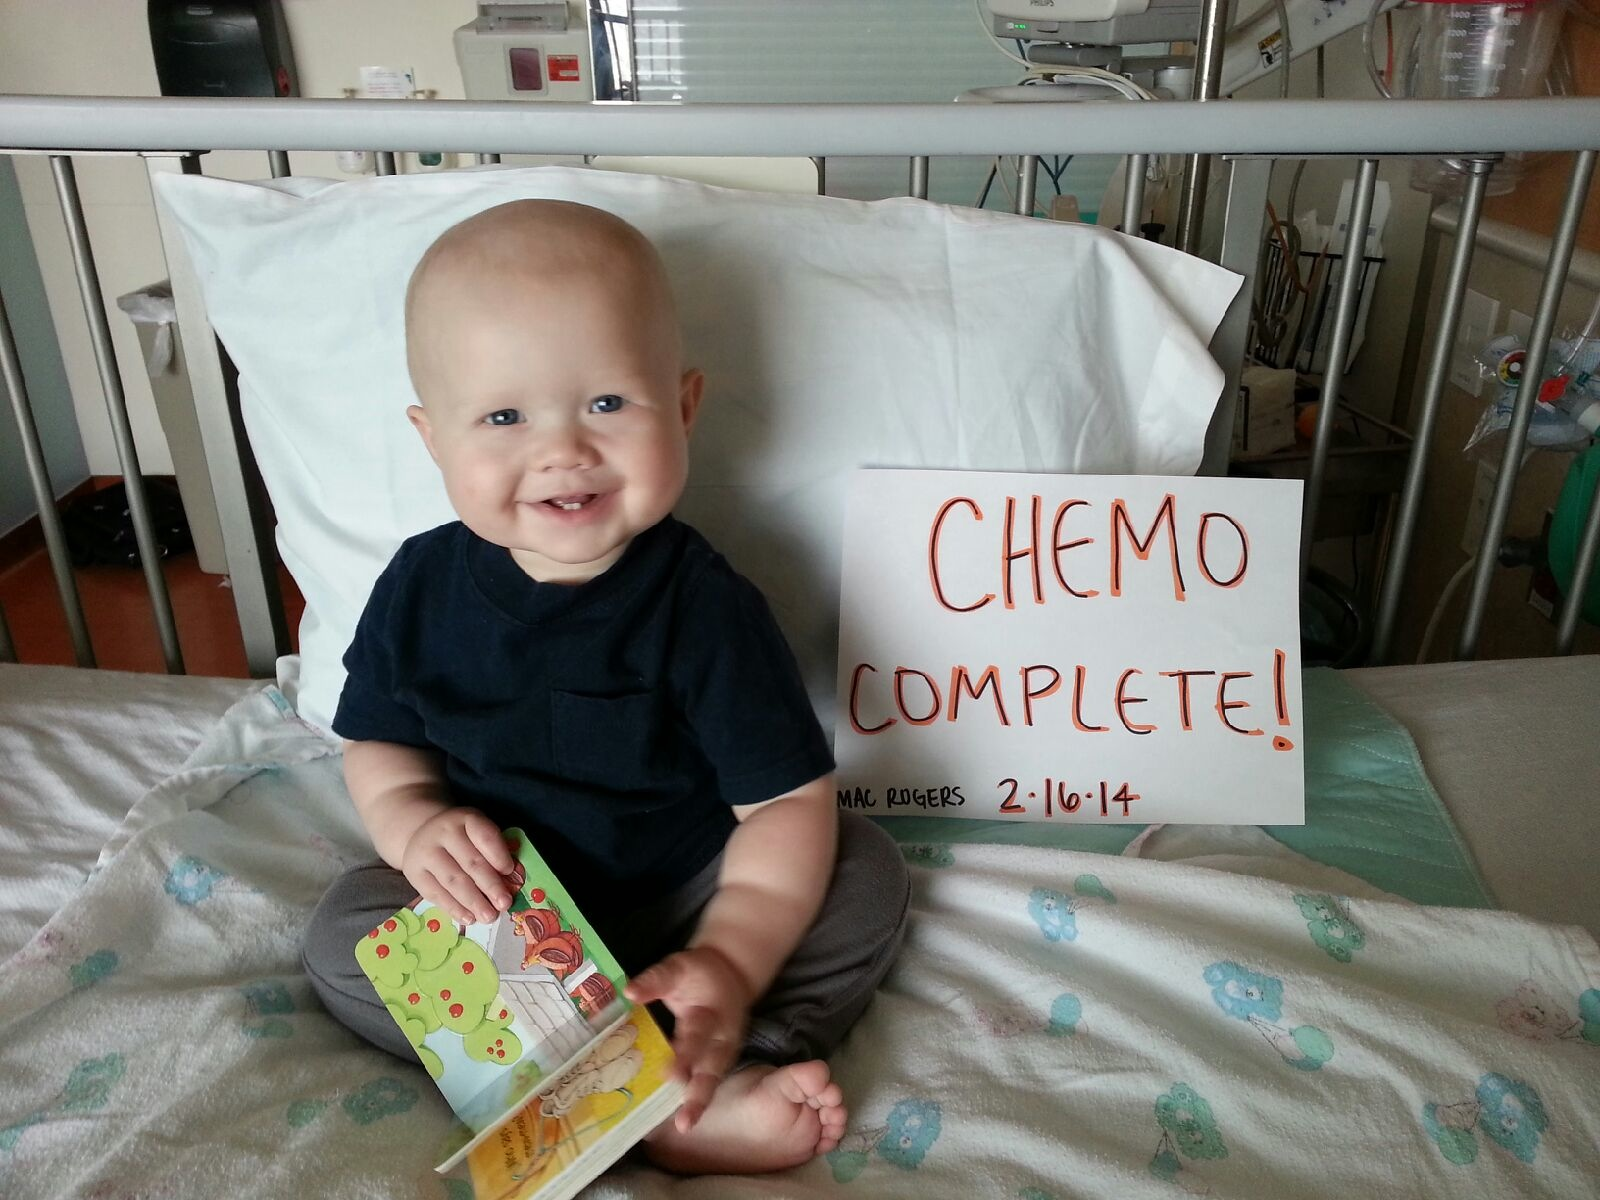 18 Weekly Chemo Chemo Complete